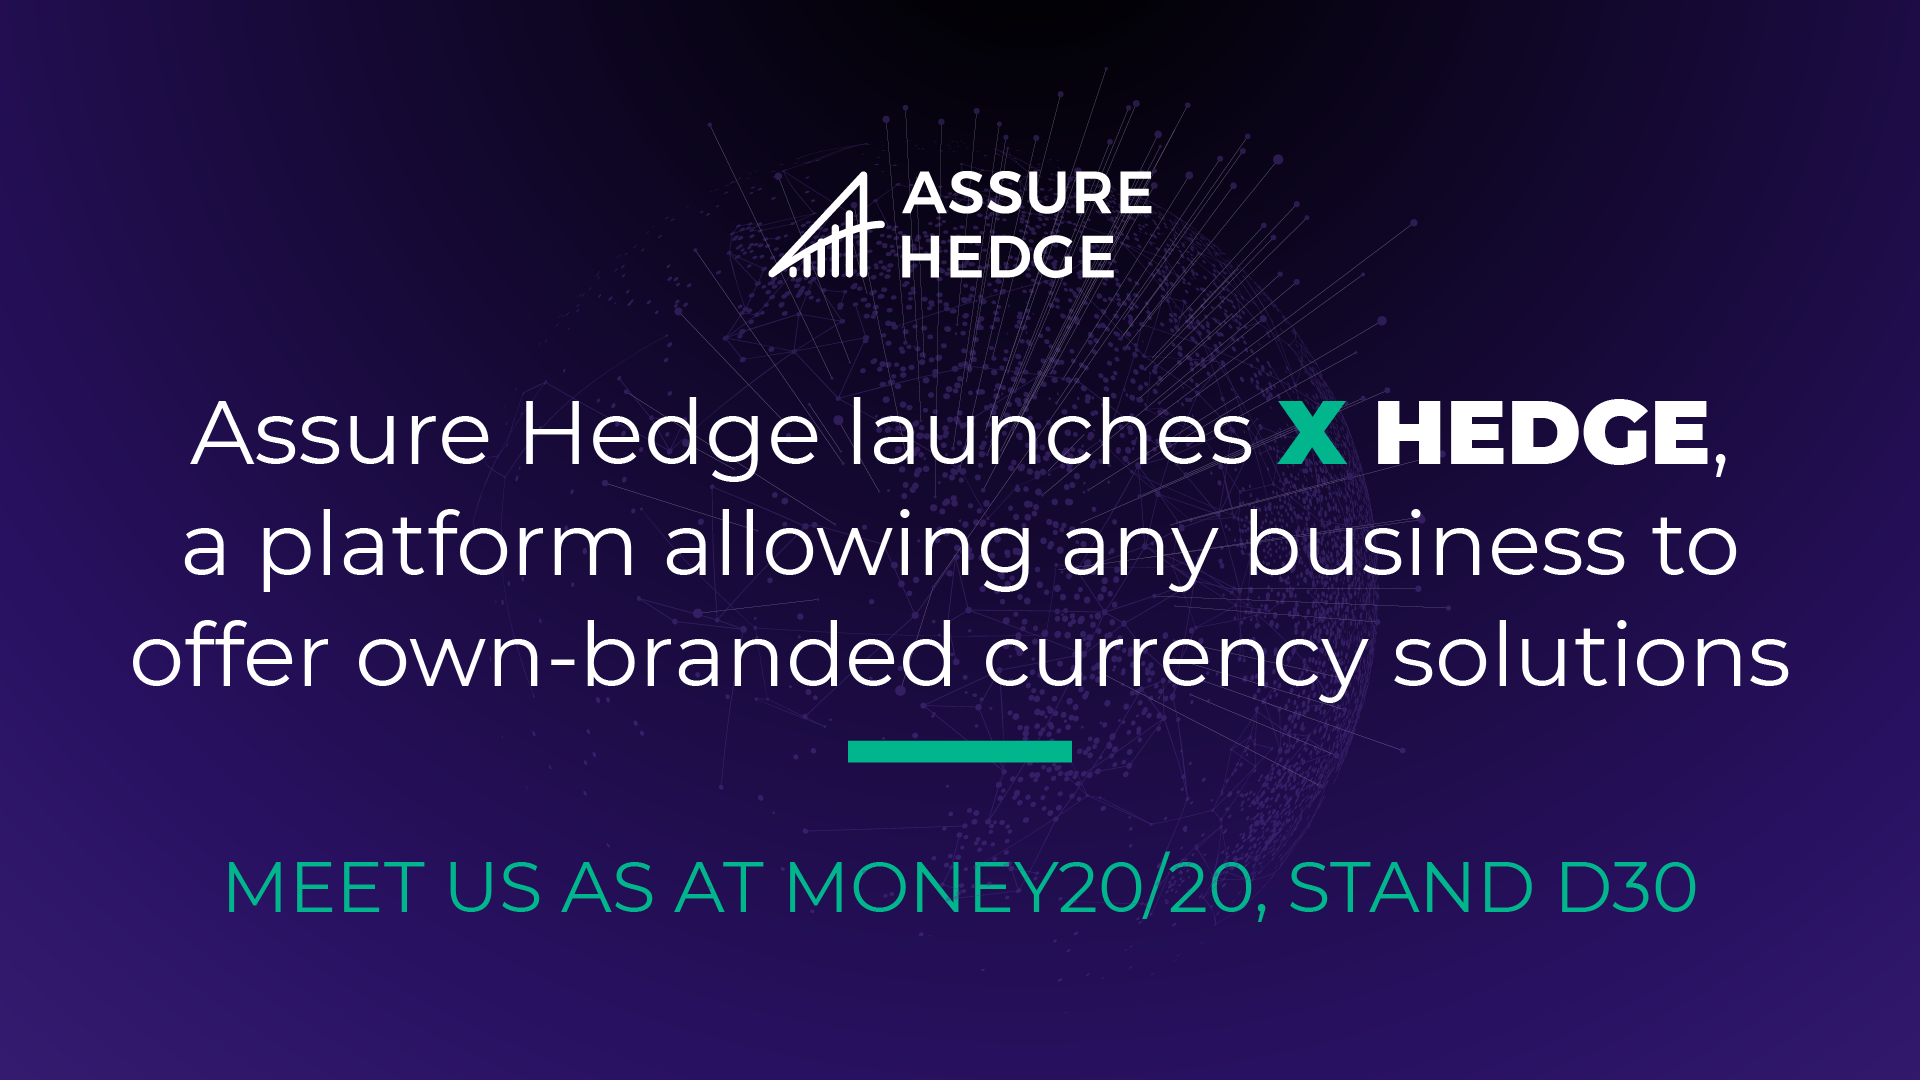 Assure Hedge Launches X Hedge, a Platform Allowing Any Business to Offer Own-branded Currency Solutions